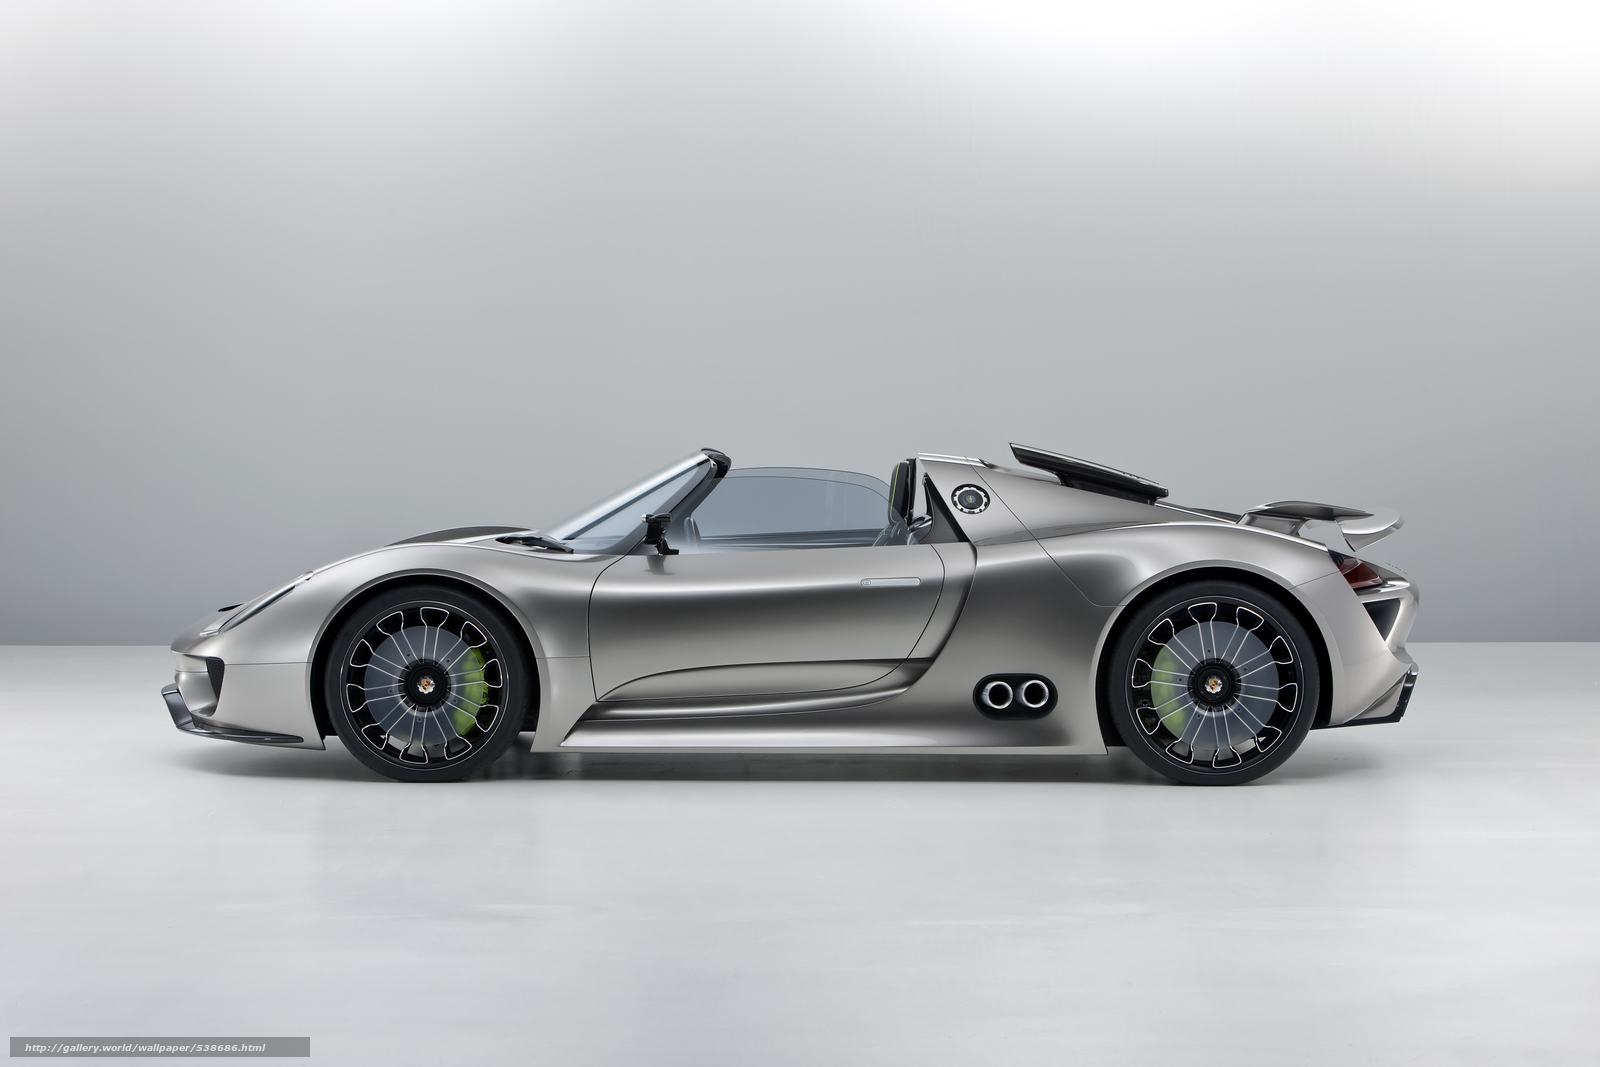 download wallpaper porsche 918 spyder hybrid concept. Black Bedroom Furniture Sets. Home Design Ideas